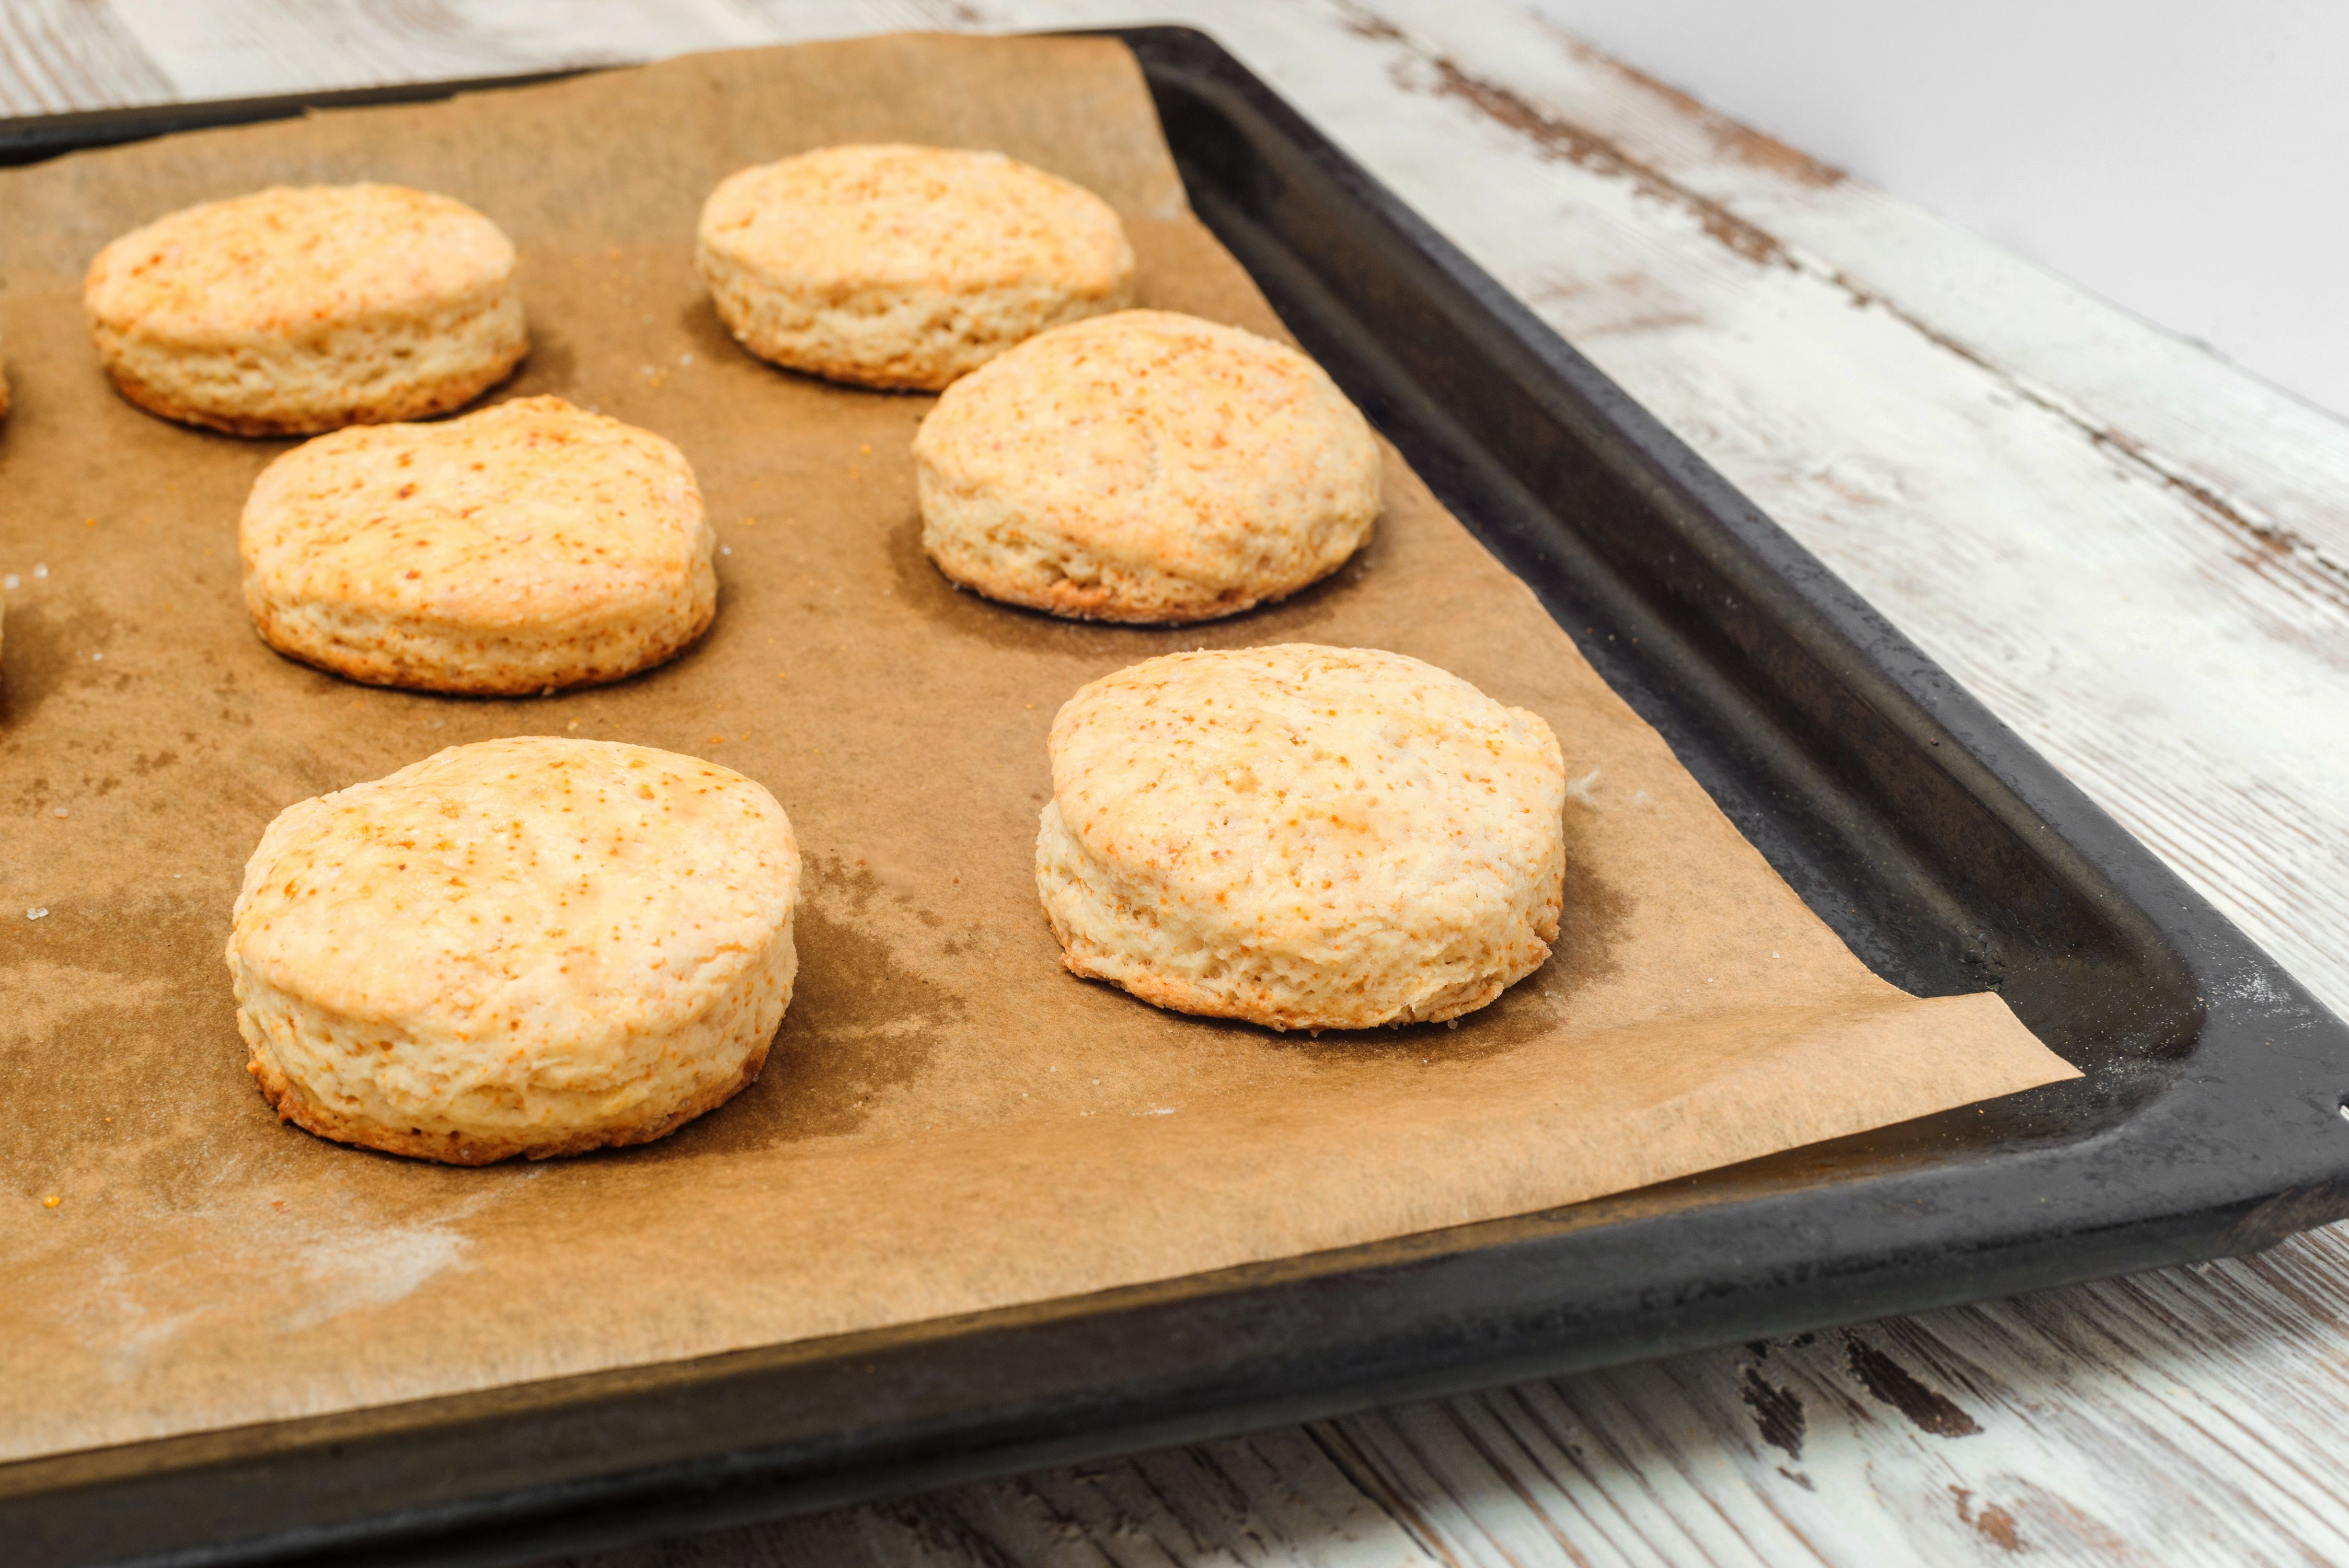 Baked biscuits on a baking sheet